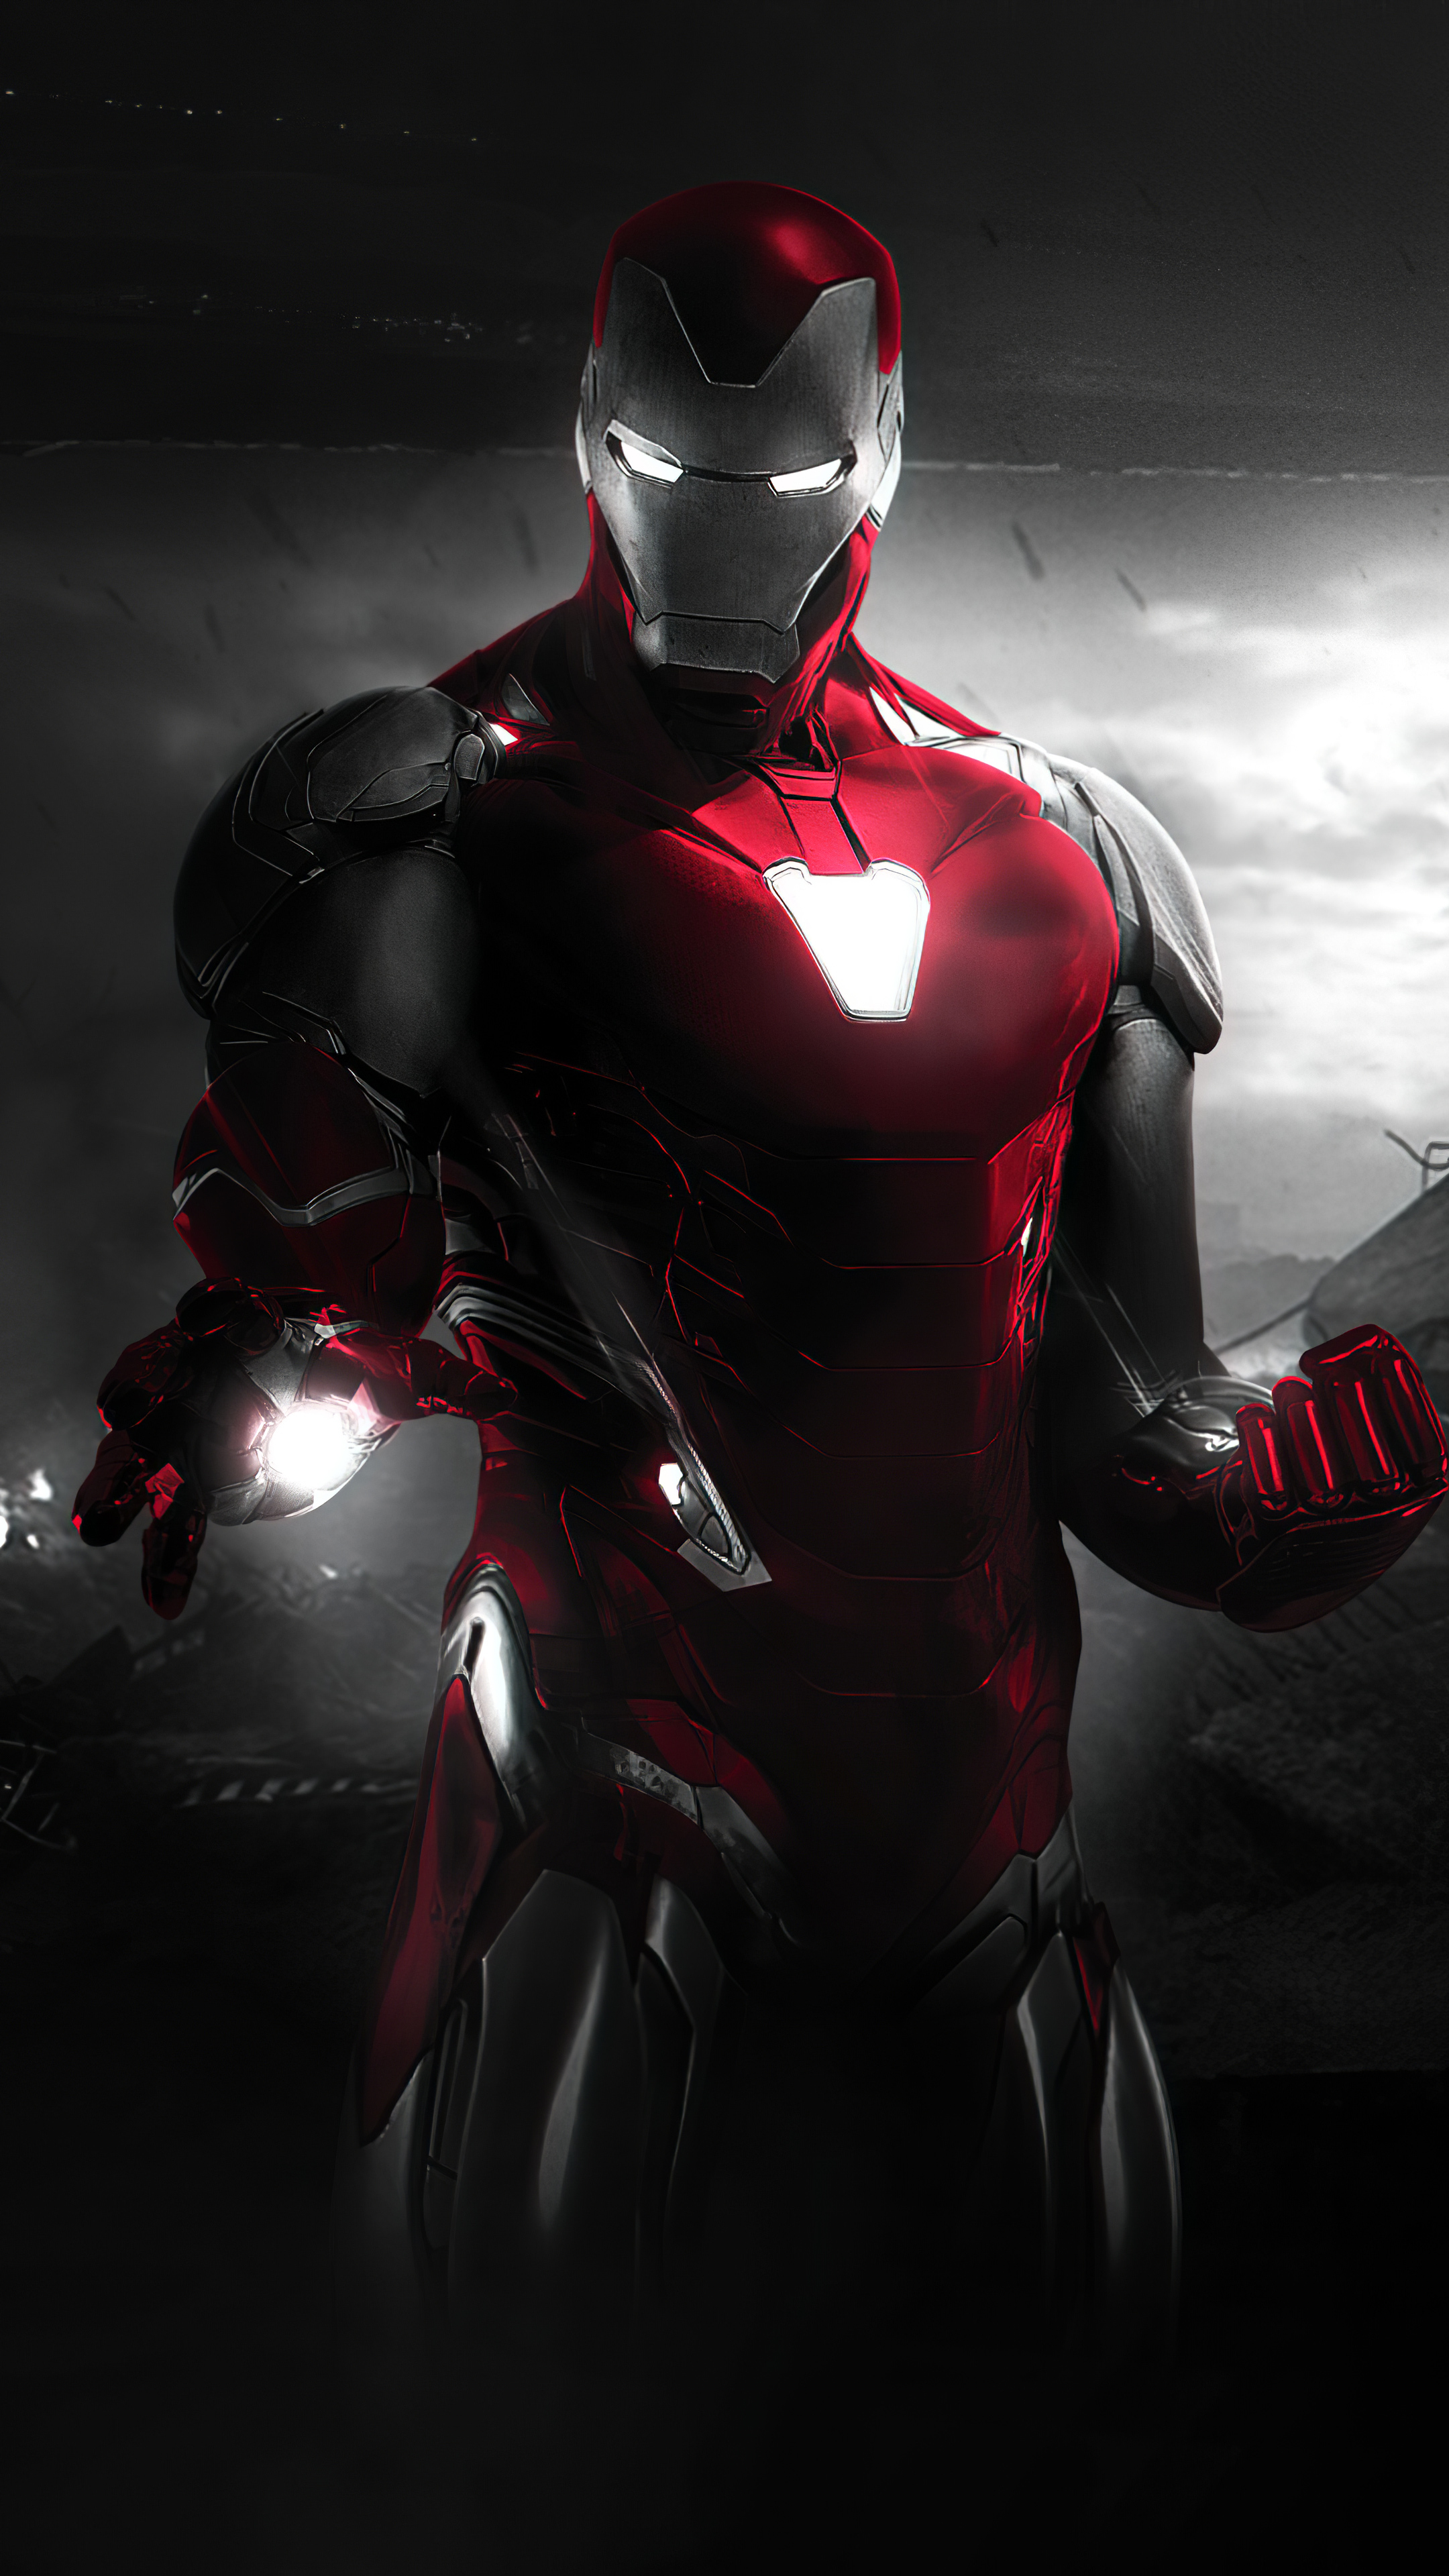 iron-man-one-year-2020-iv.jpg